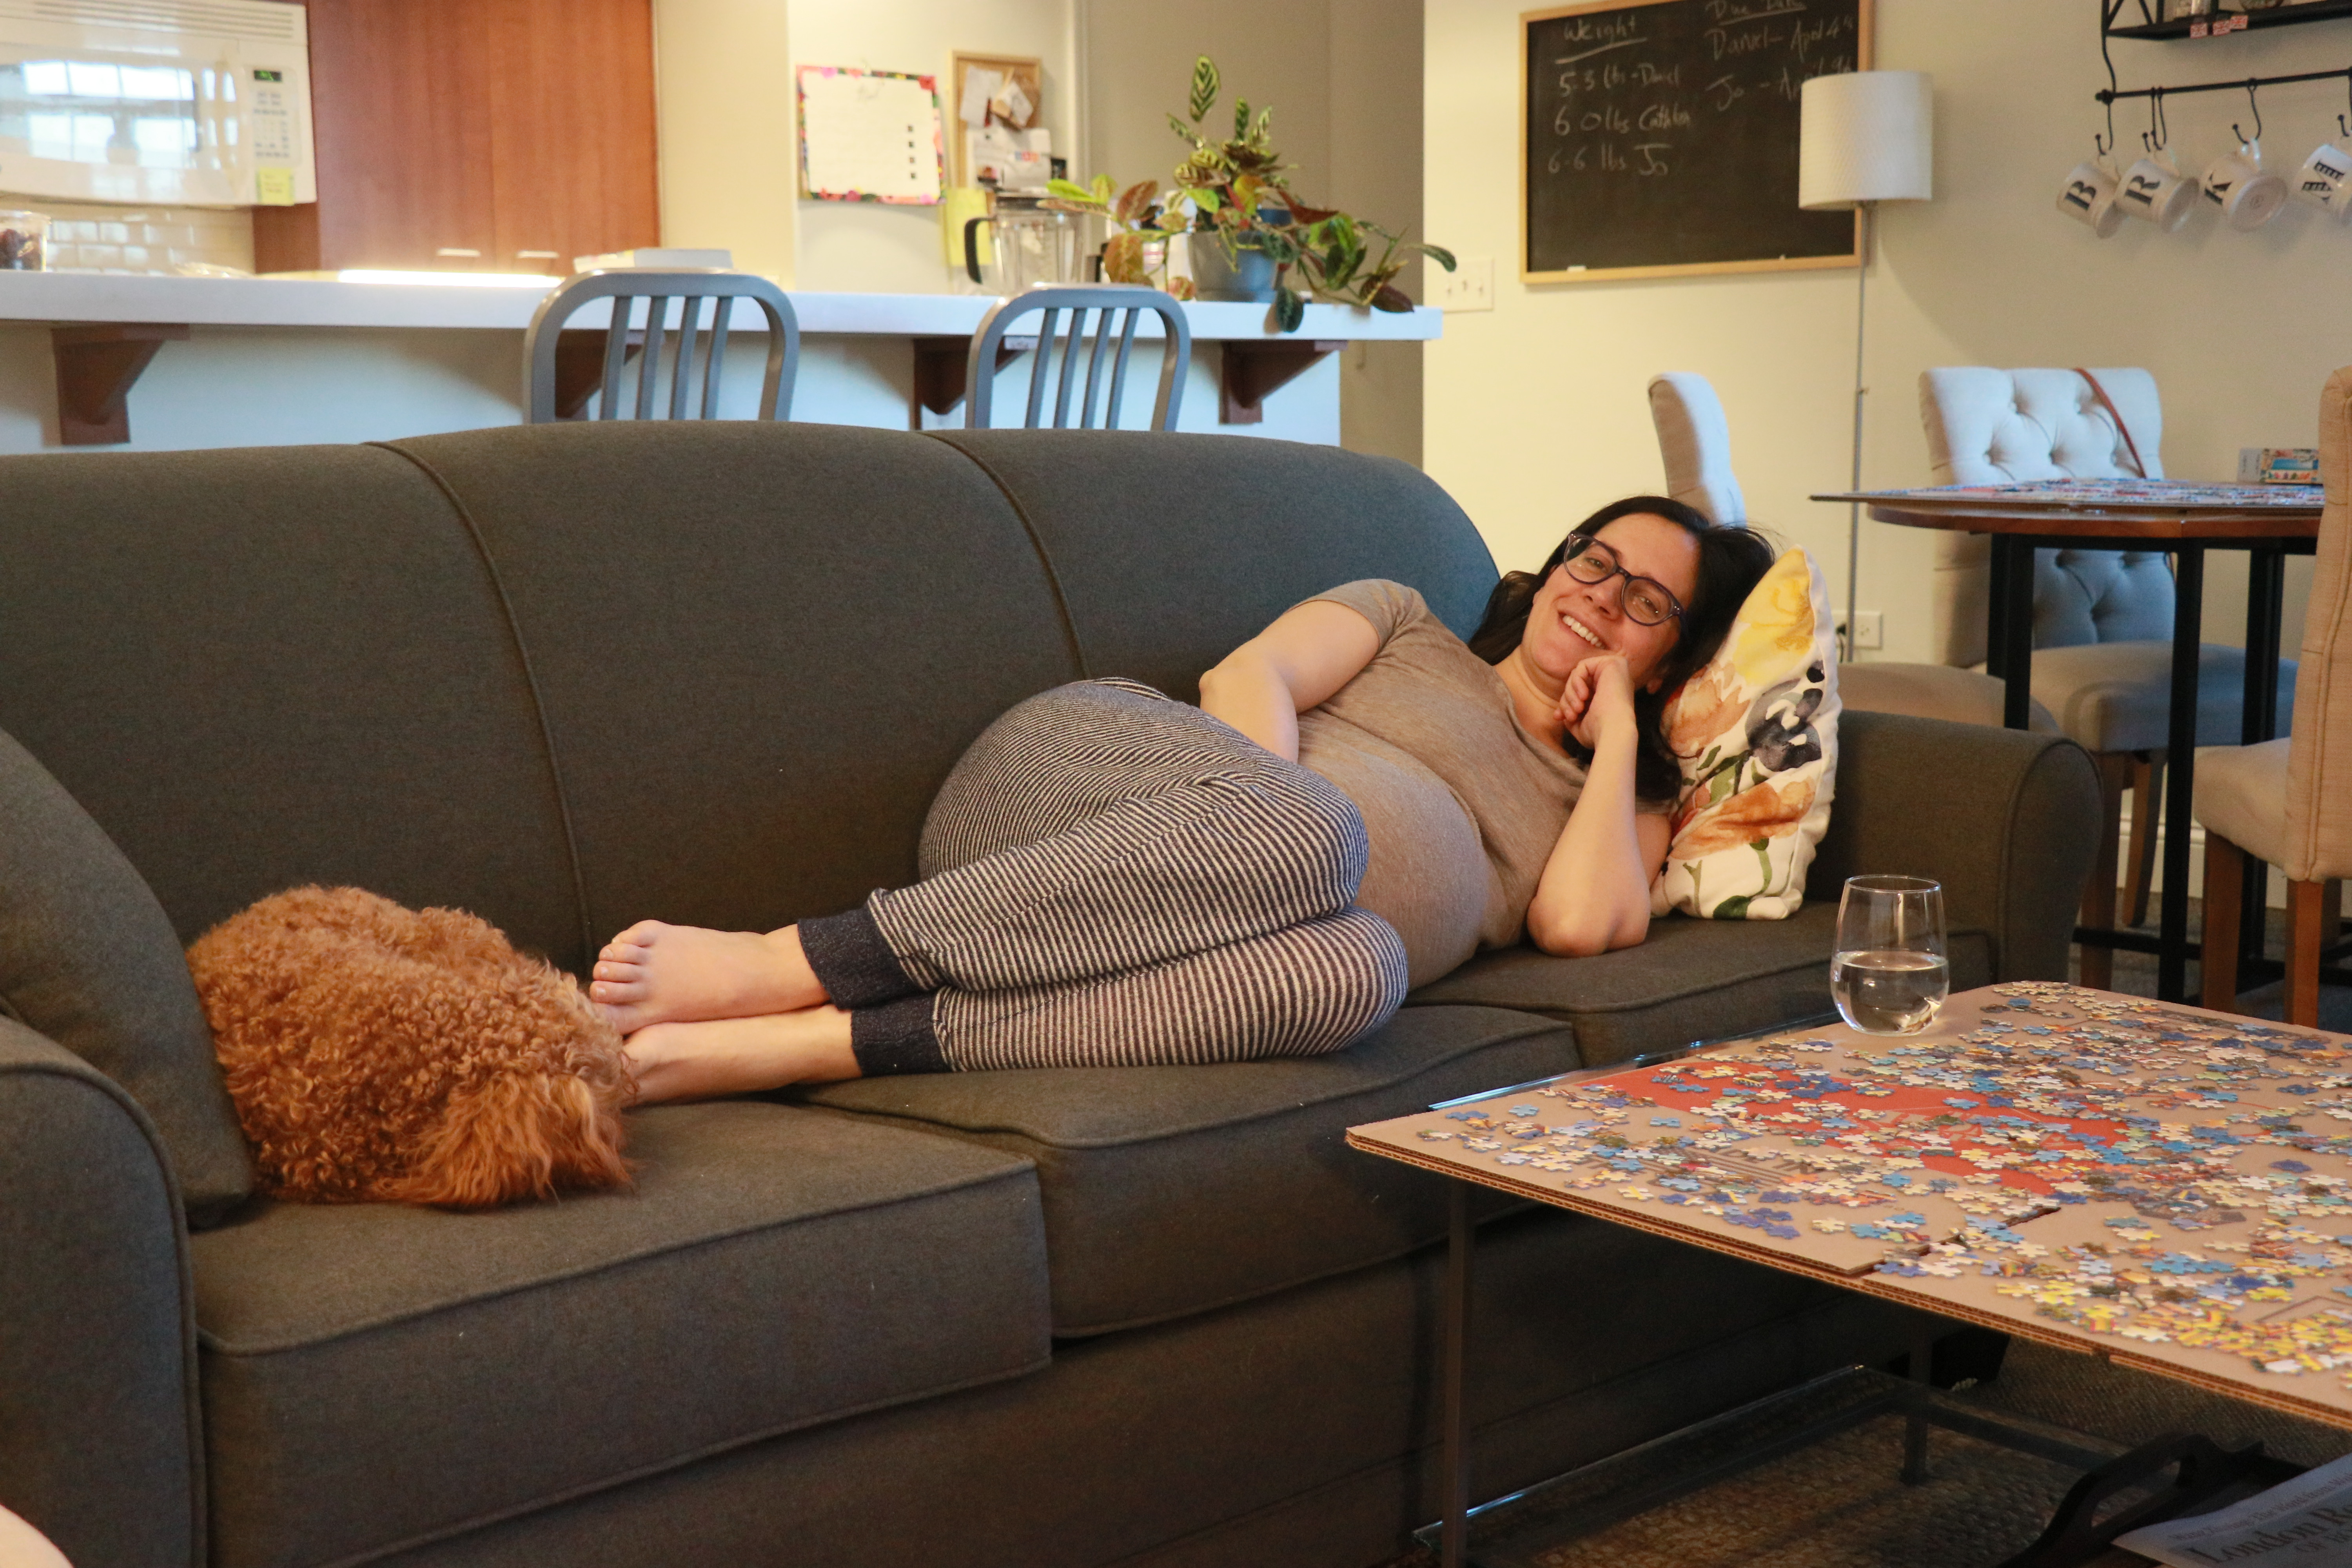 Pregnant woman lying on couch. Puppy at her feet and jigsaw puzzle at her side